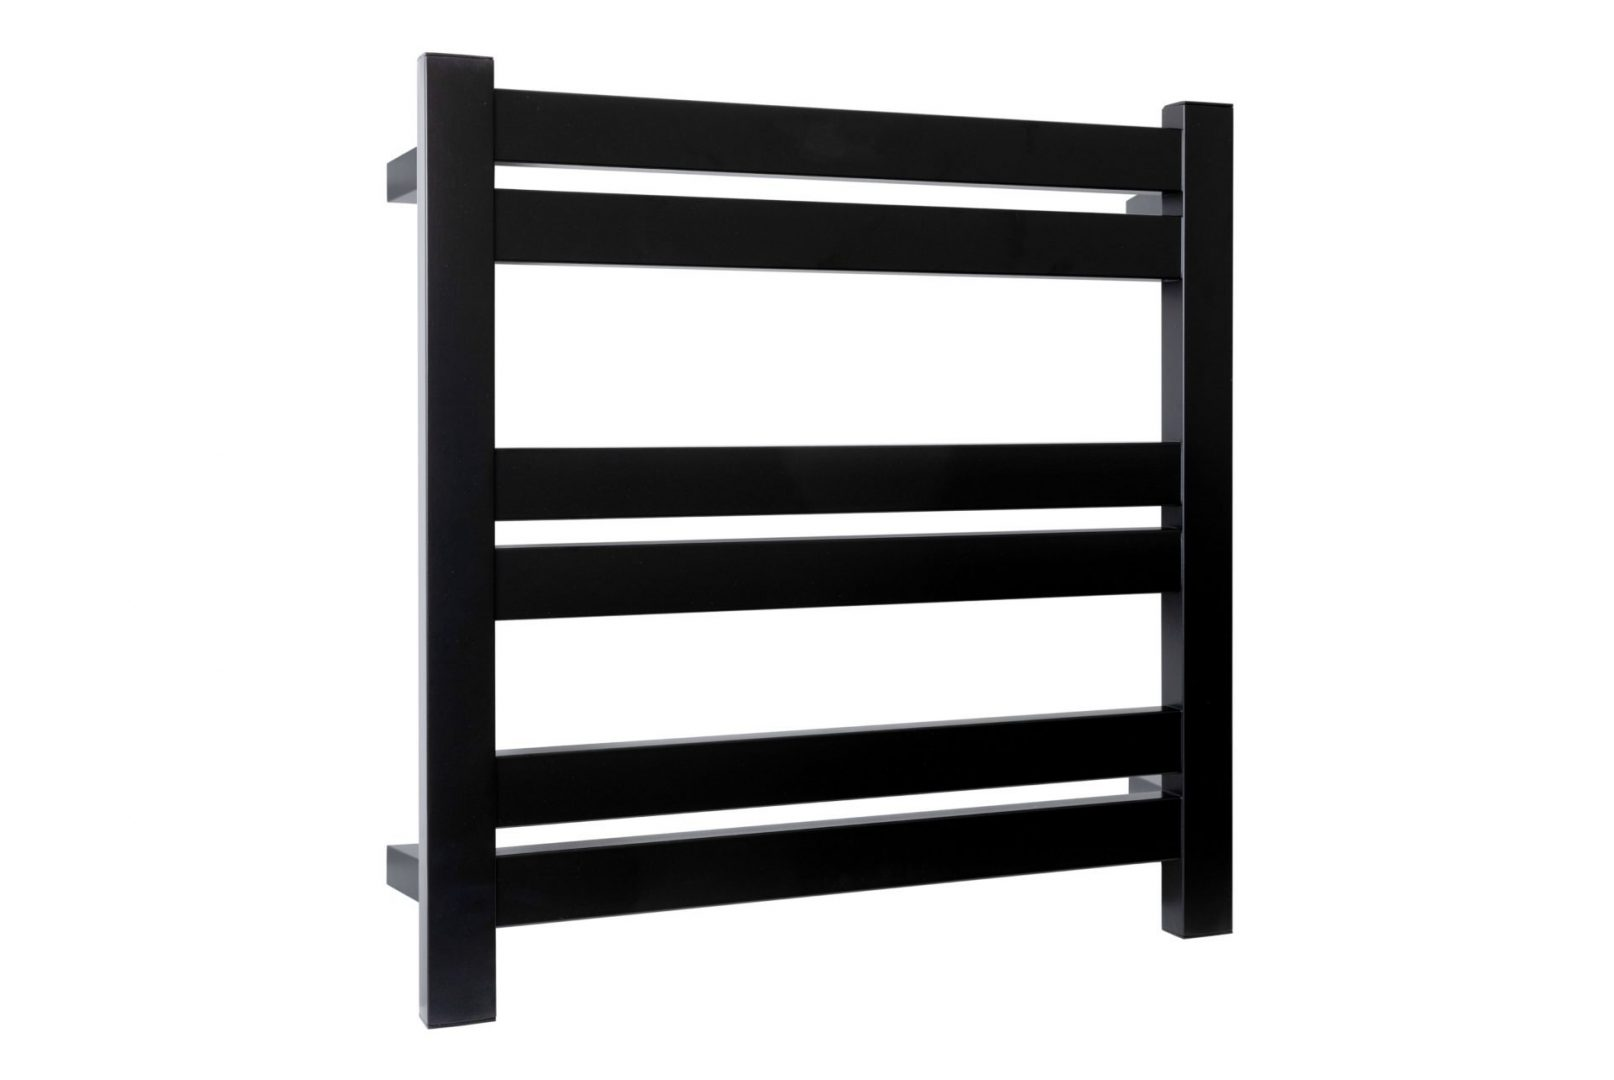 Siena 6 Bar Heated Towel Rail- Matt Black